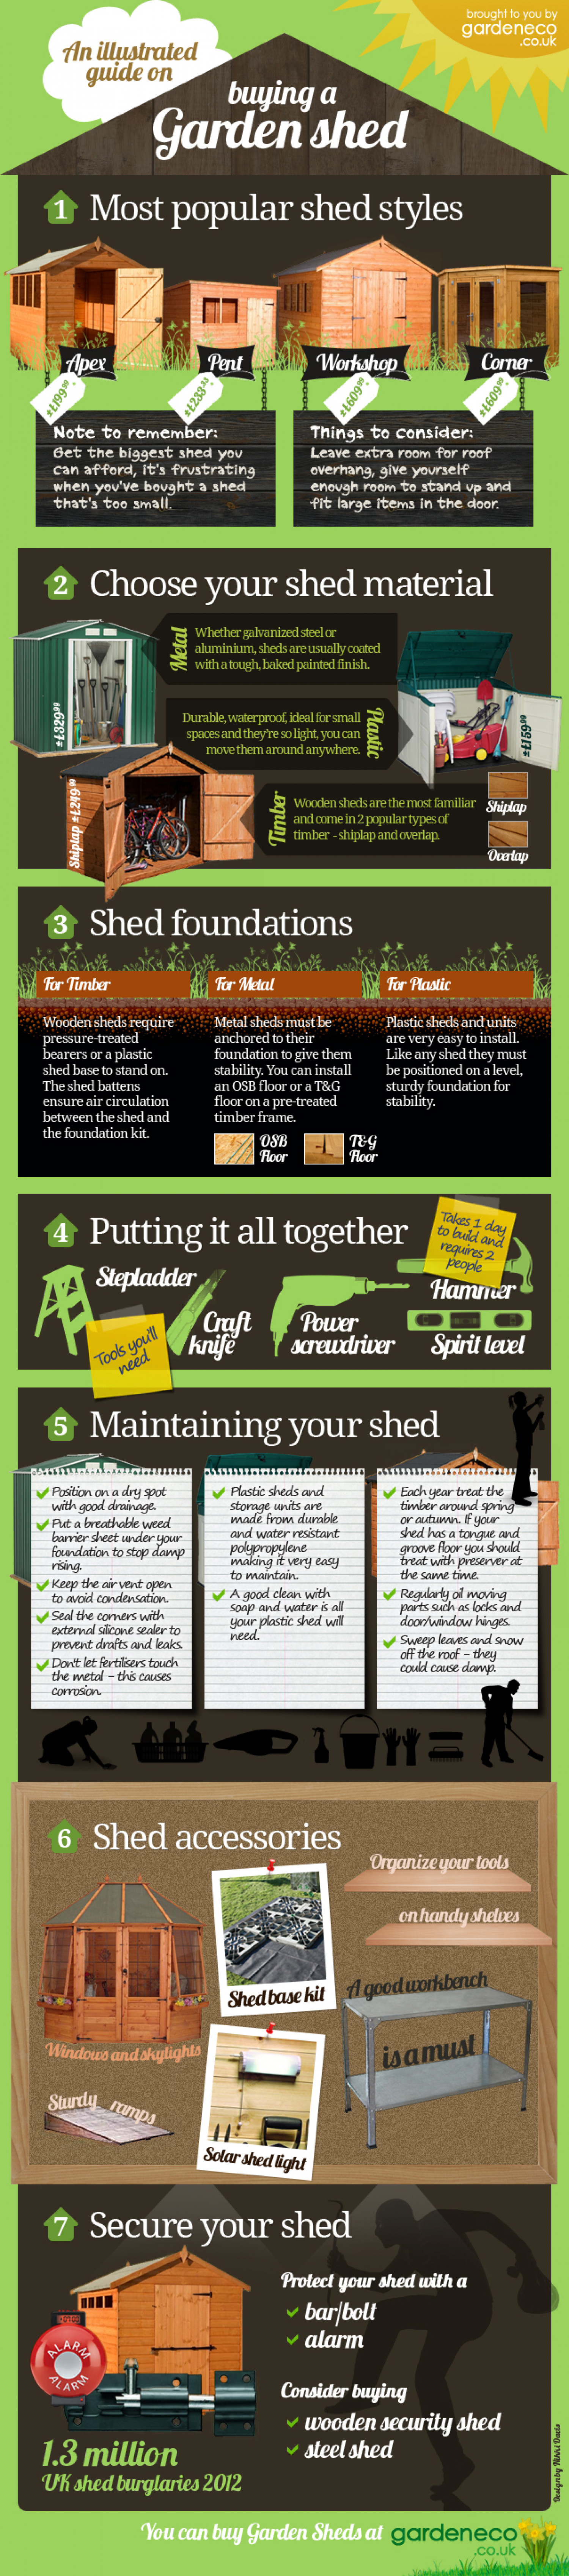 Shed Buying Guide Infographic